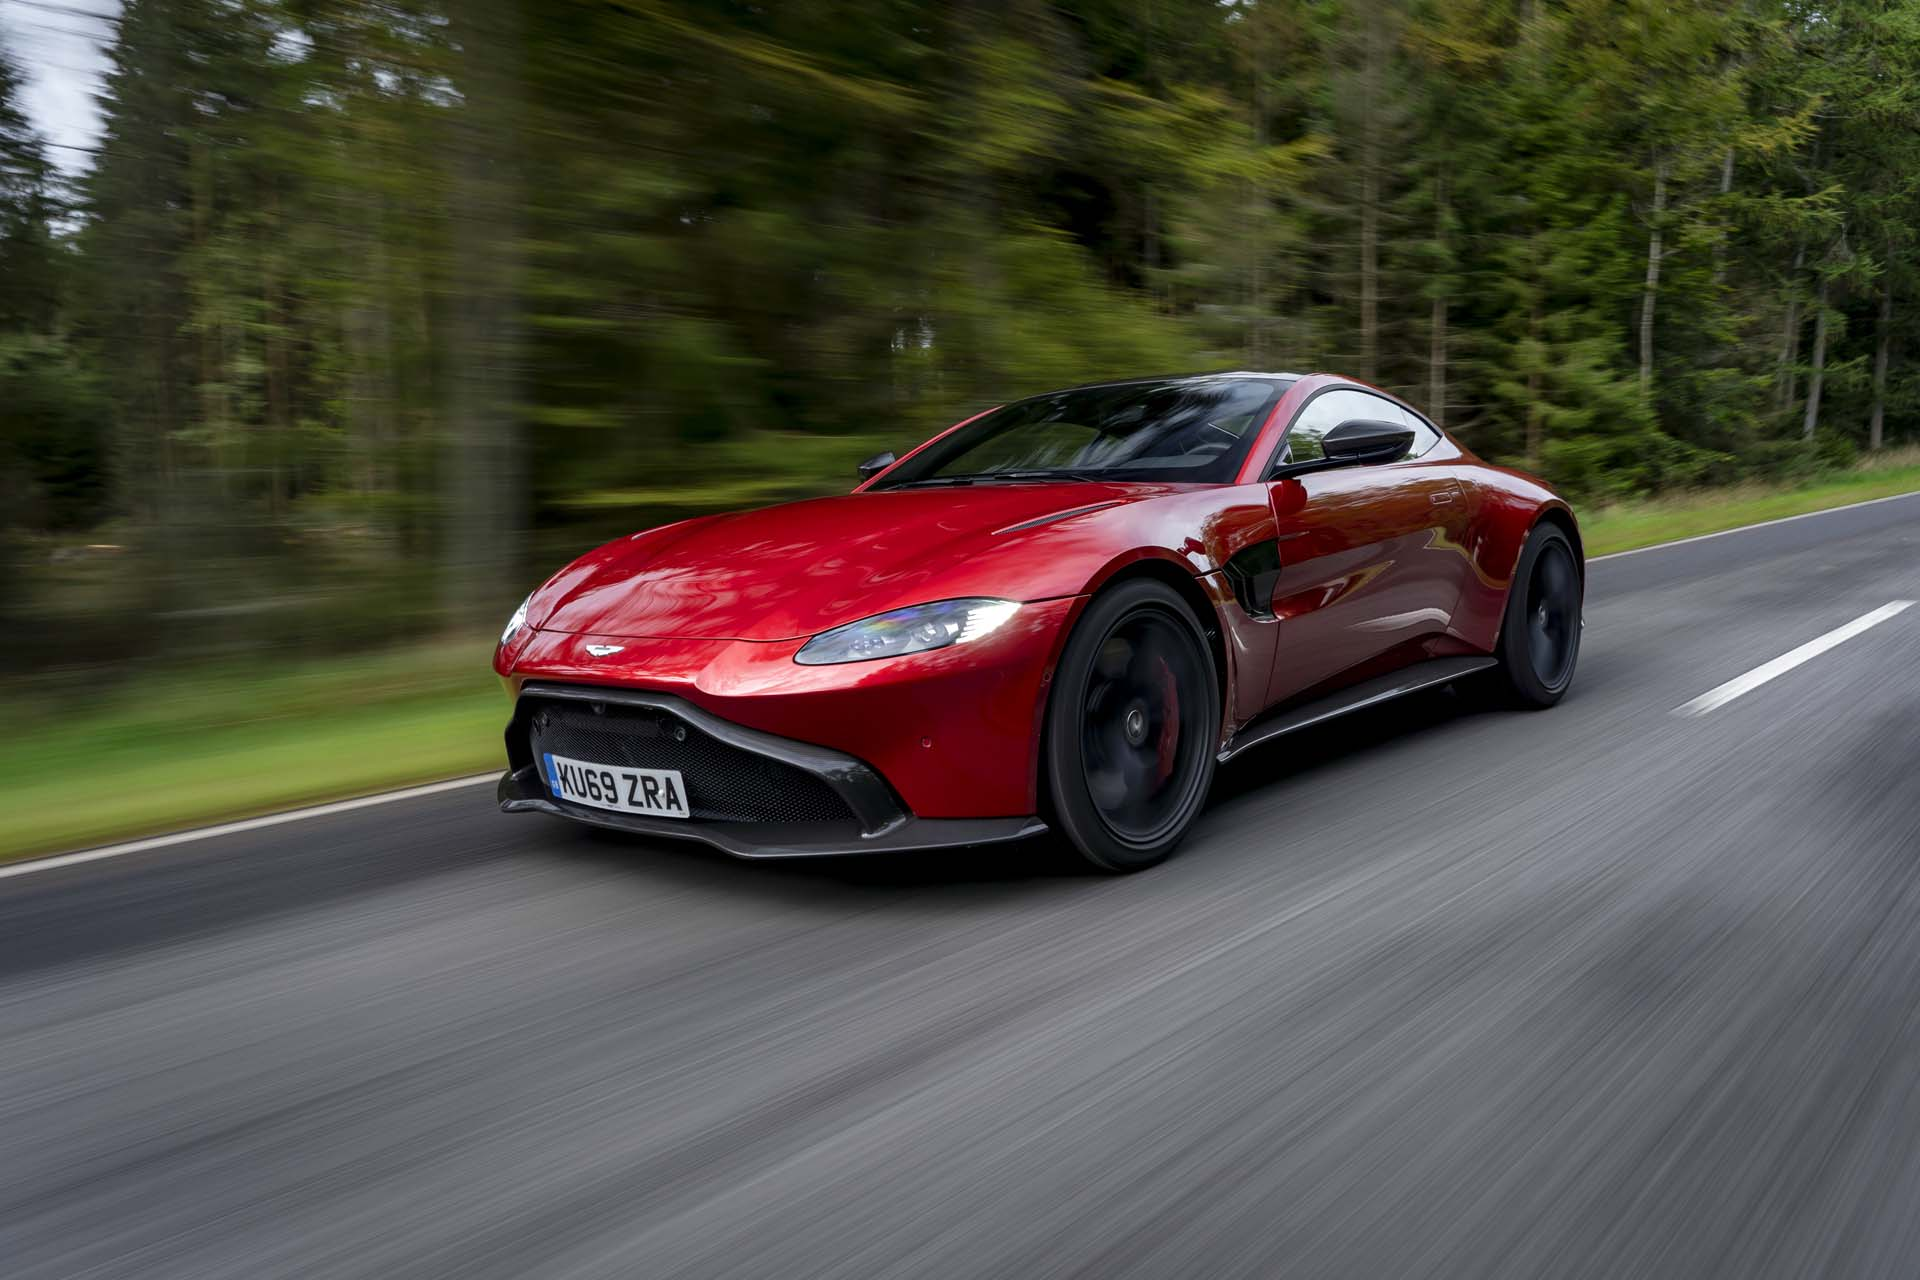 First Drive Review 2020 Aston Martin Vantage Amr S Manual Transmission Grows On You